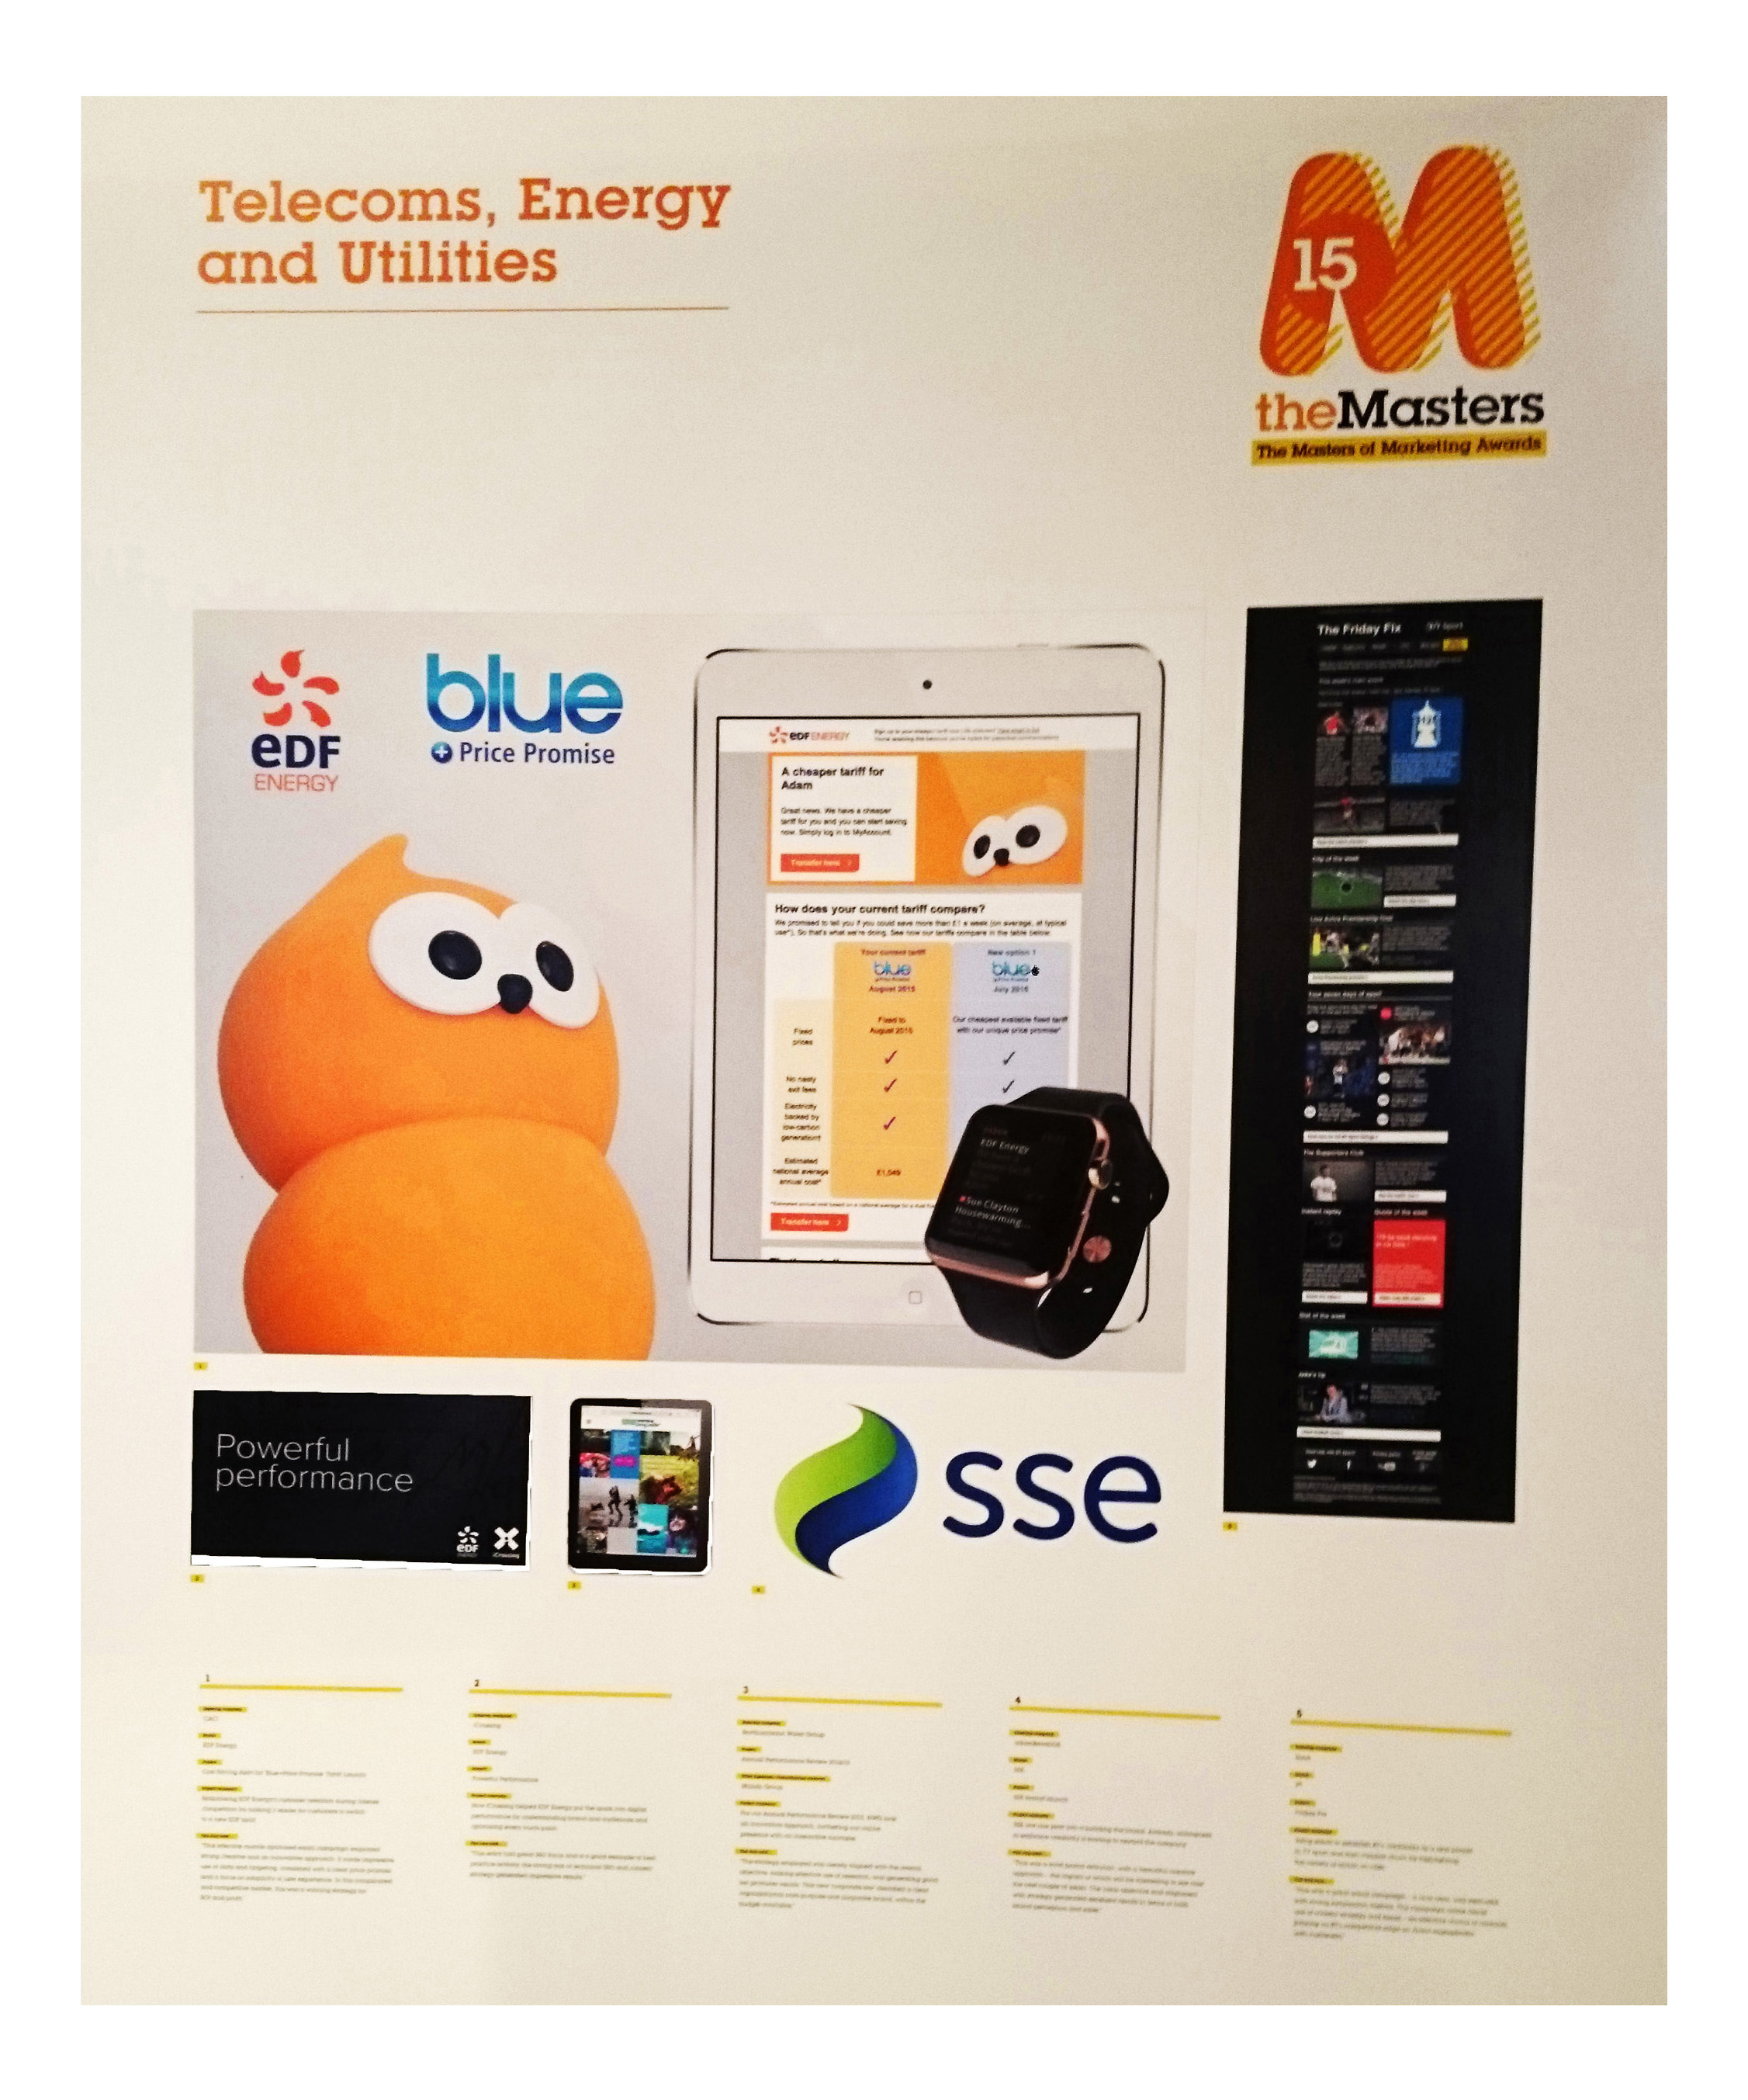 Best Telecoms, Energy & Utilities Campaign